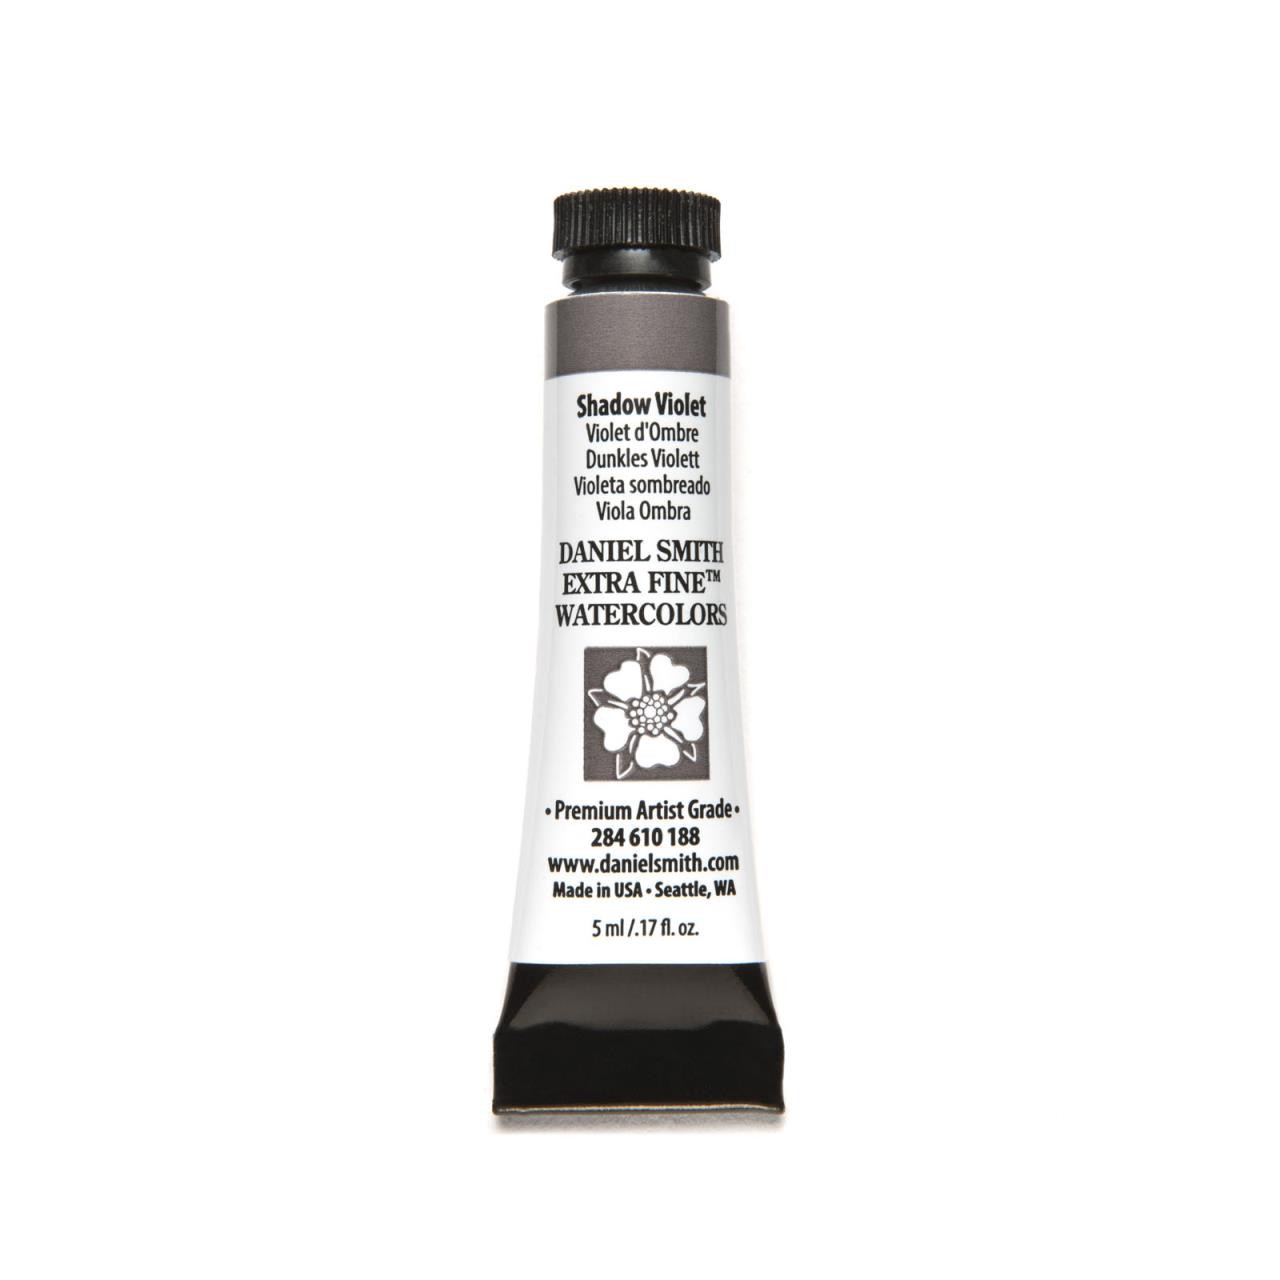 Shadow Violet, DANIEL SMITH Extra Fine Watercolors 5ml Tubes -